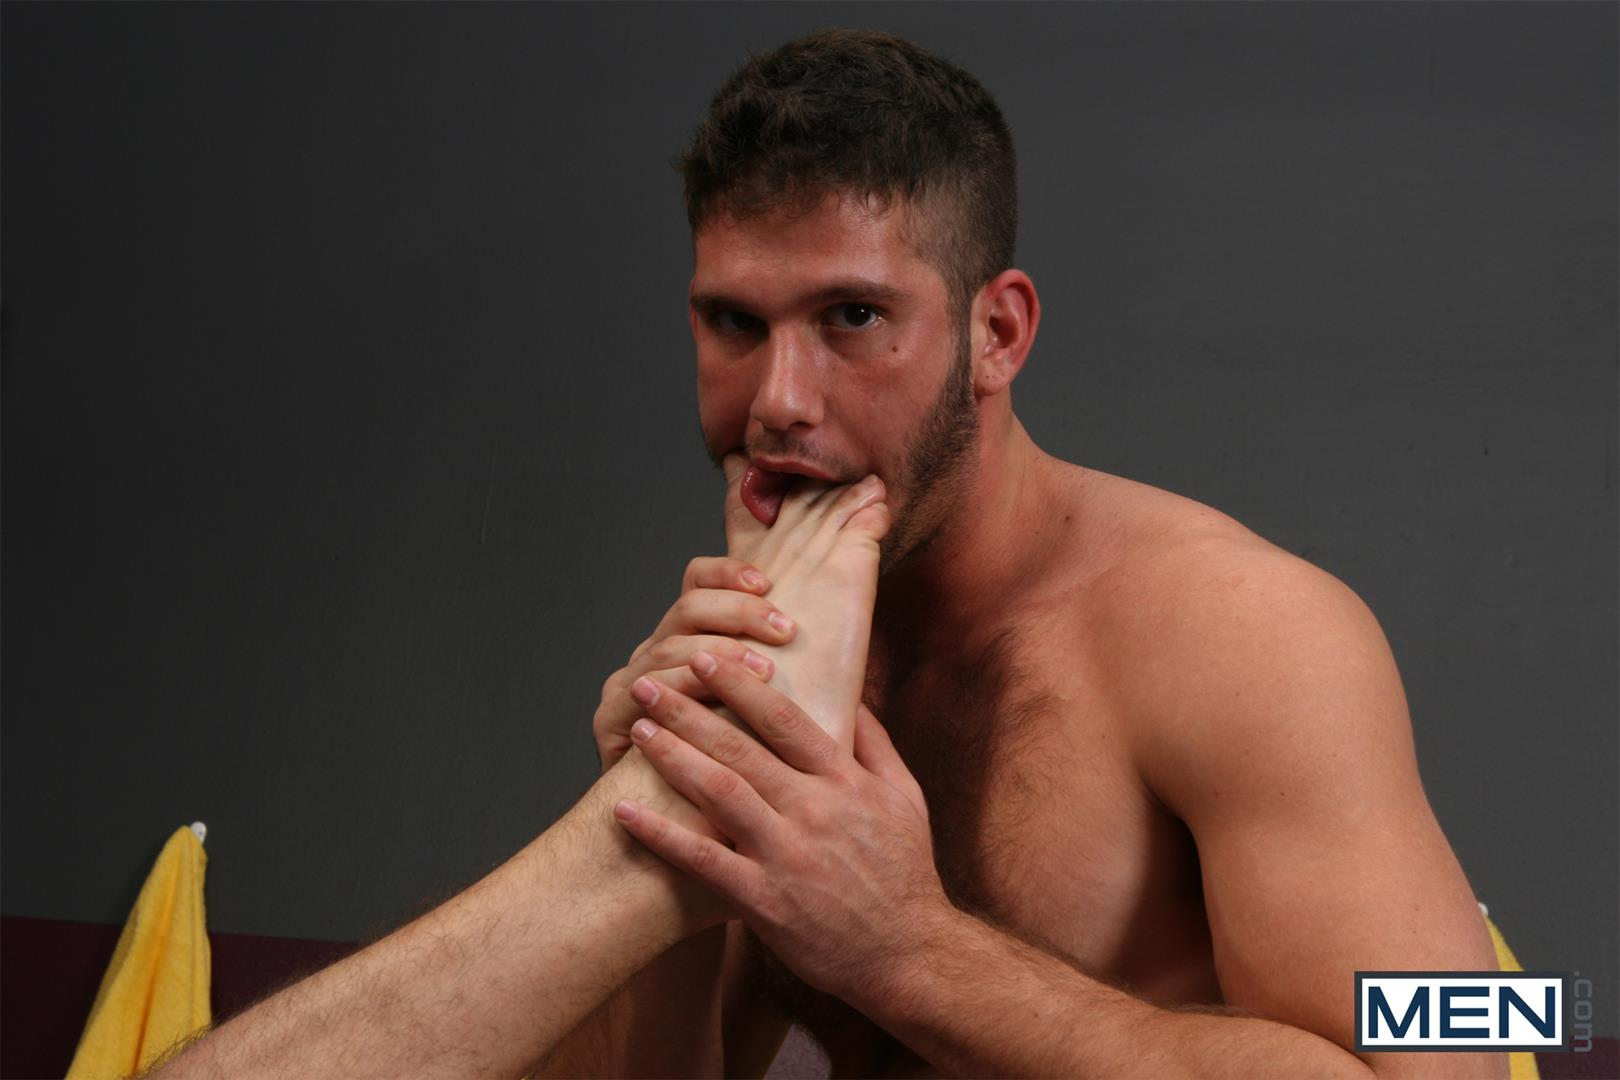 Men-Drill-My-Hole-Colt-Rivers-and-Jimmy-Fanz-Muscle-Jocks-Fucking-In-The-Locker-Room-Amateur-Gay-Porn-15 Hairy Ass Muscle Jocks Fucking In The Locker Room